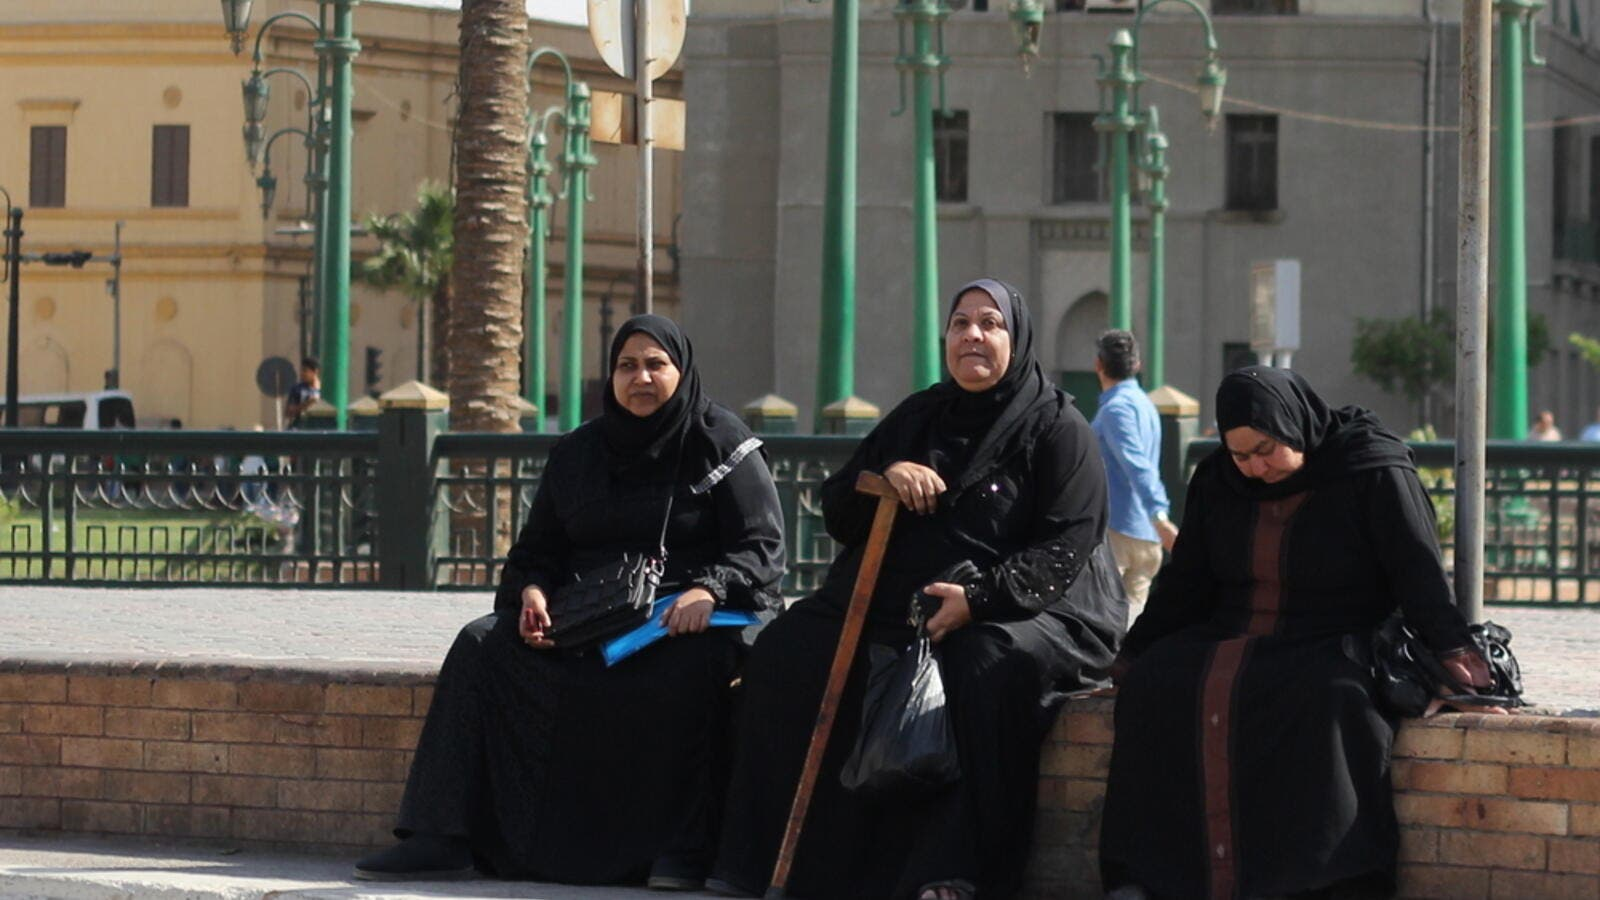 More than 60 percent of Egypt's women are estimated to have been denied their inheritance shares, according to independent studies (Shutterstock/File Photo)